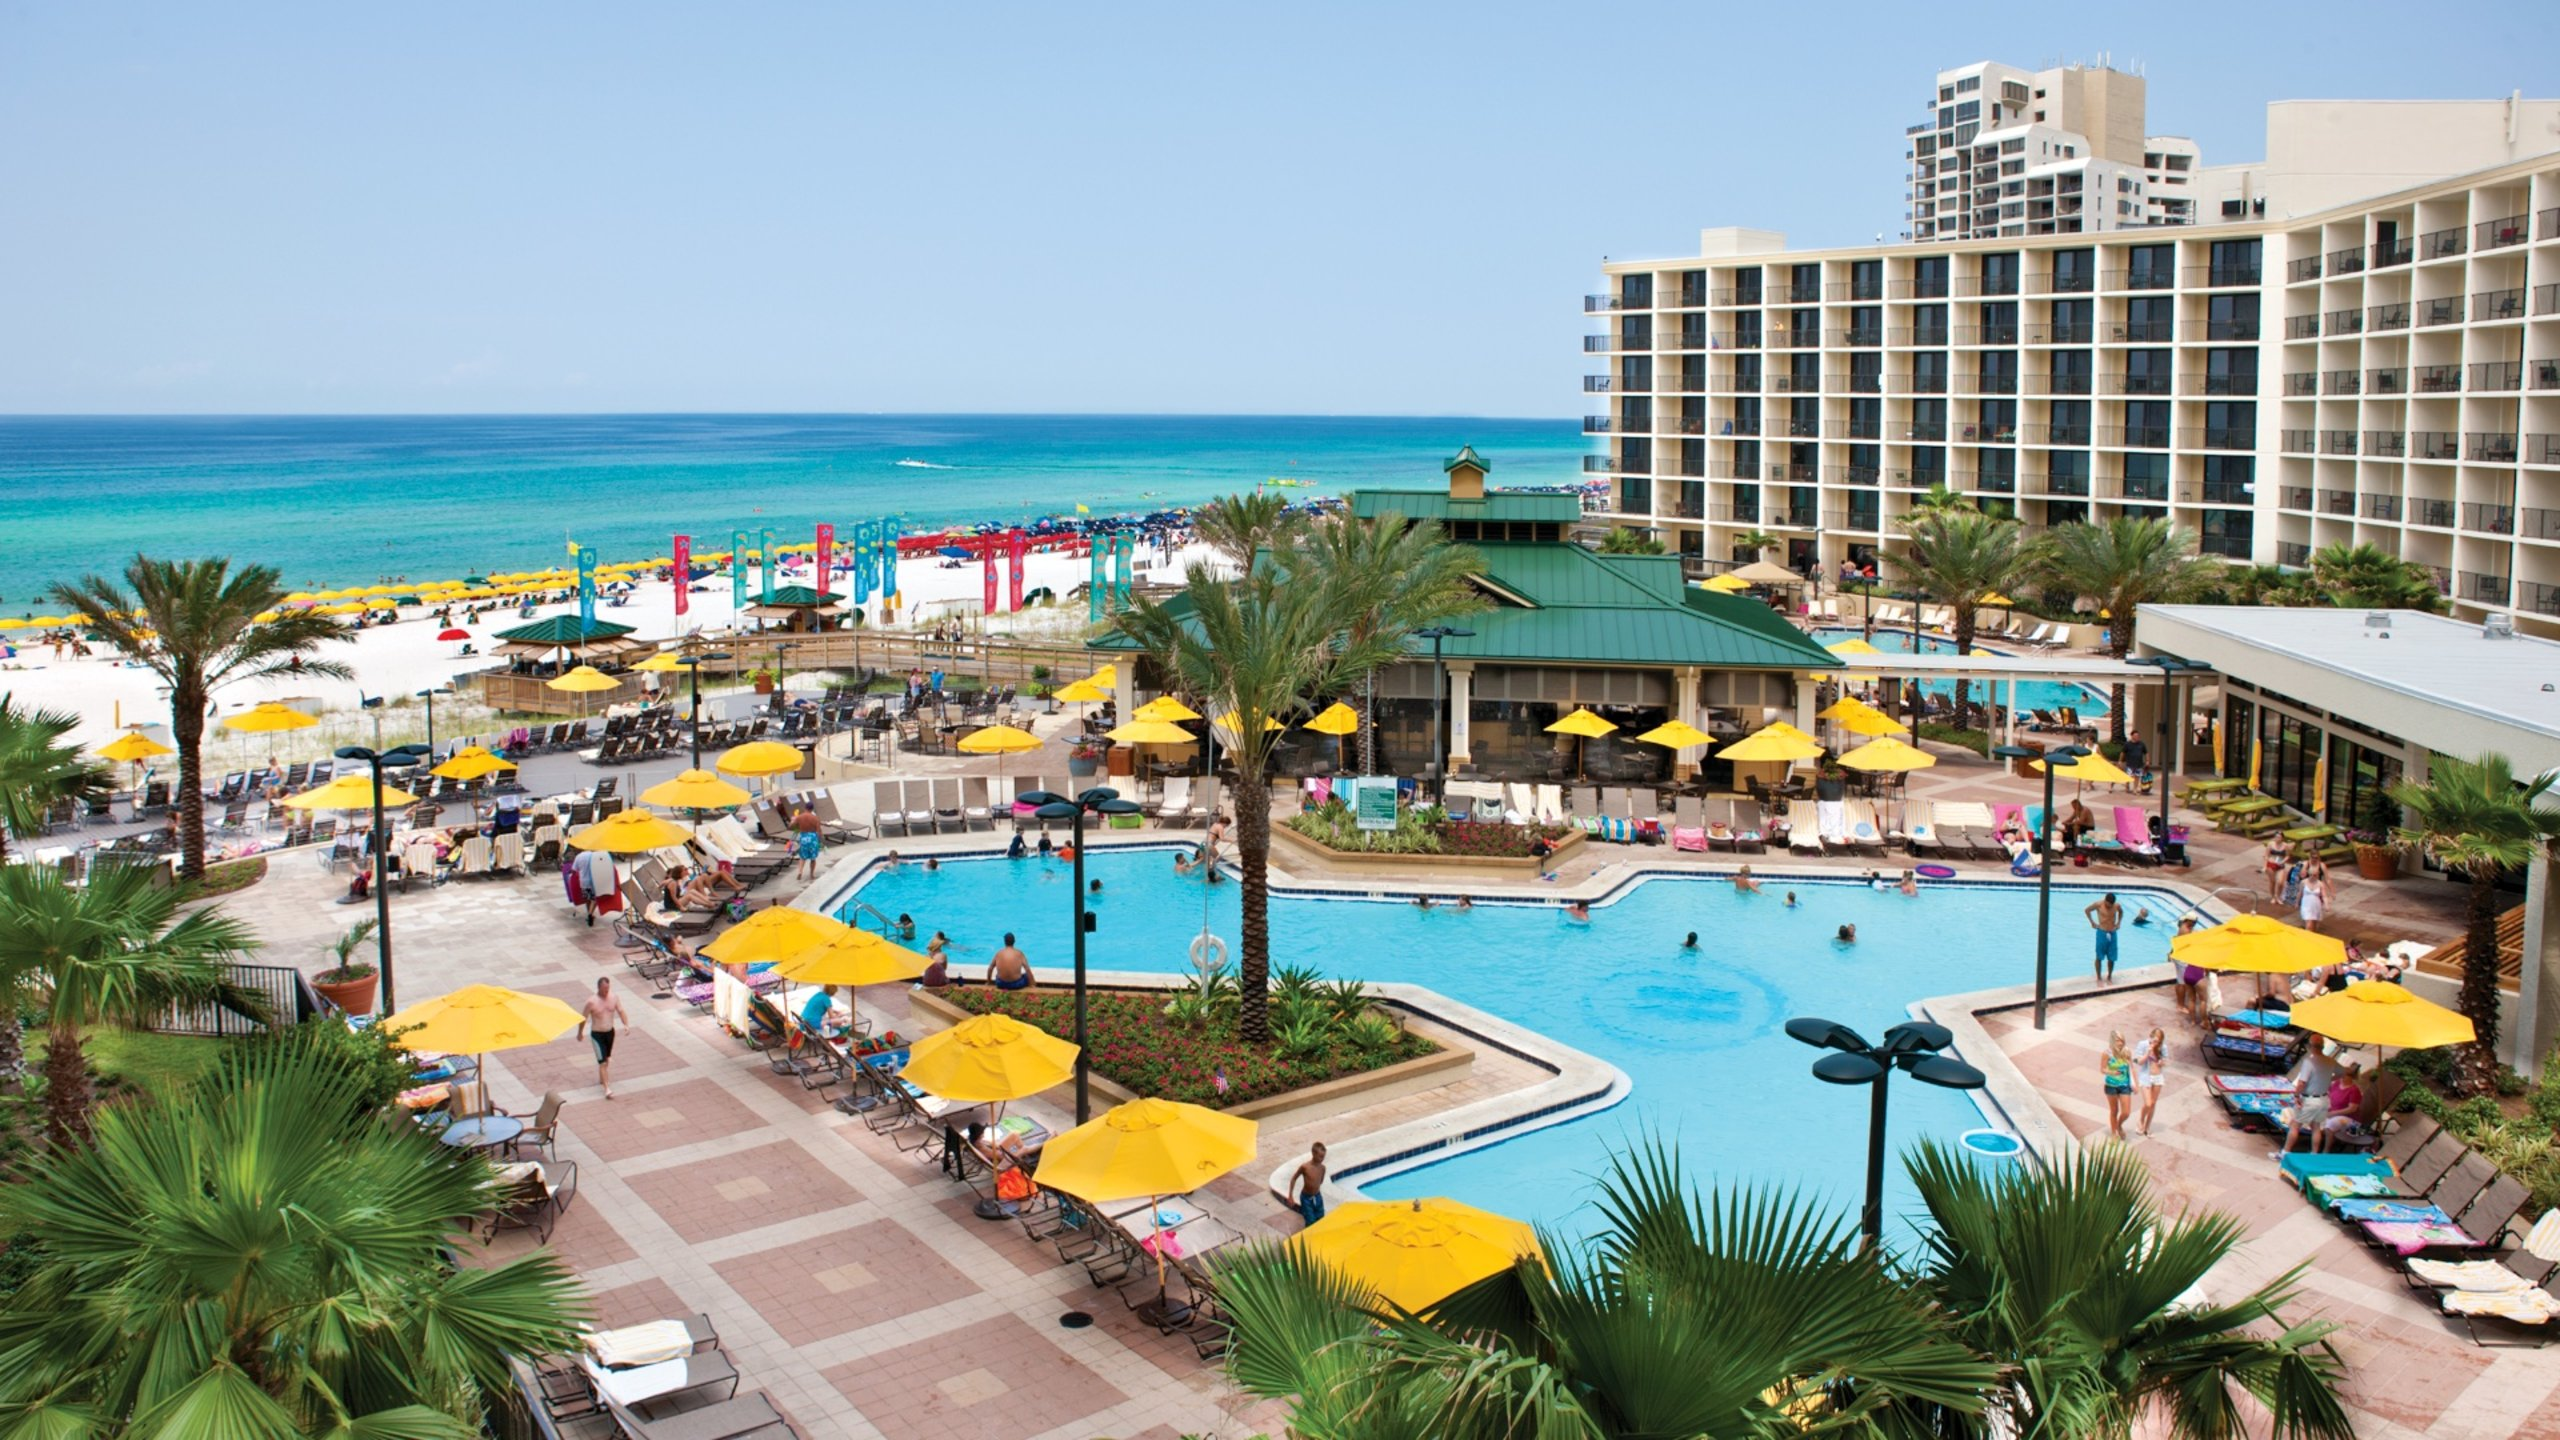 Top Hotels In Miramar Beach From 89